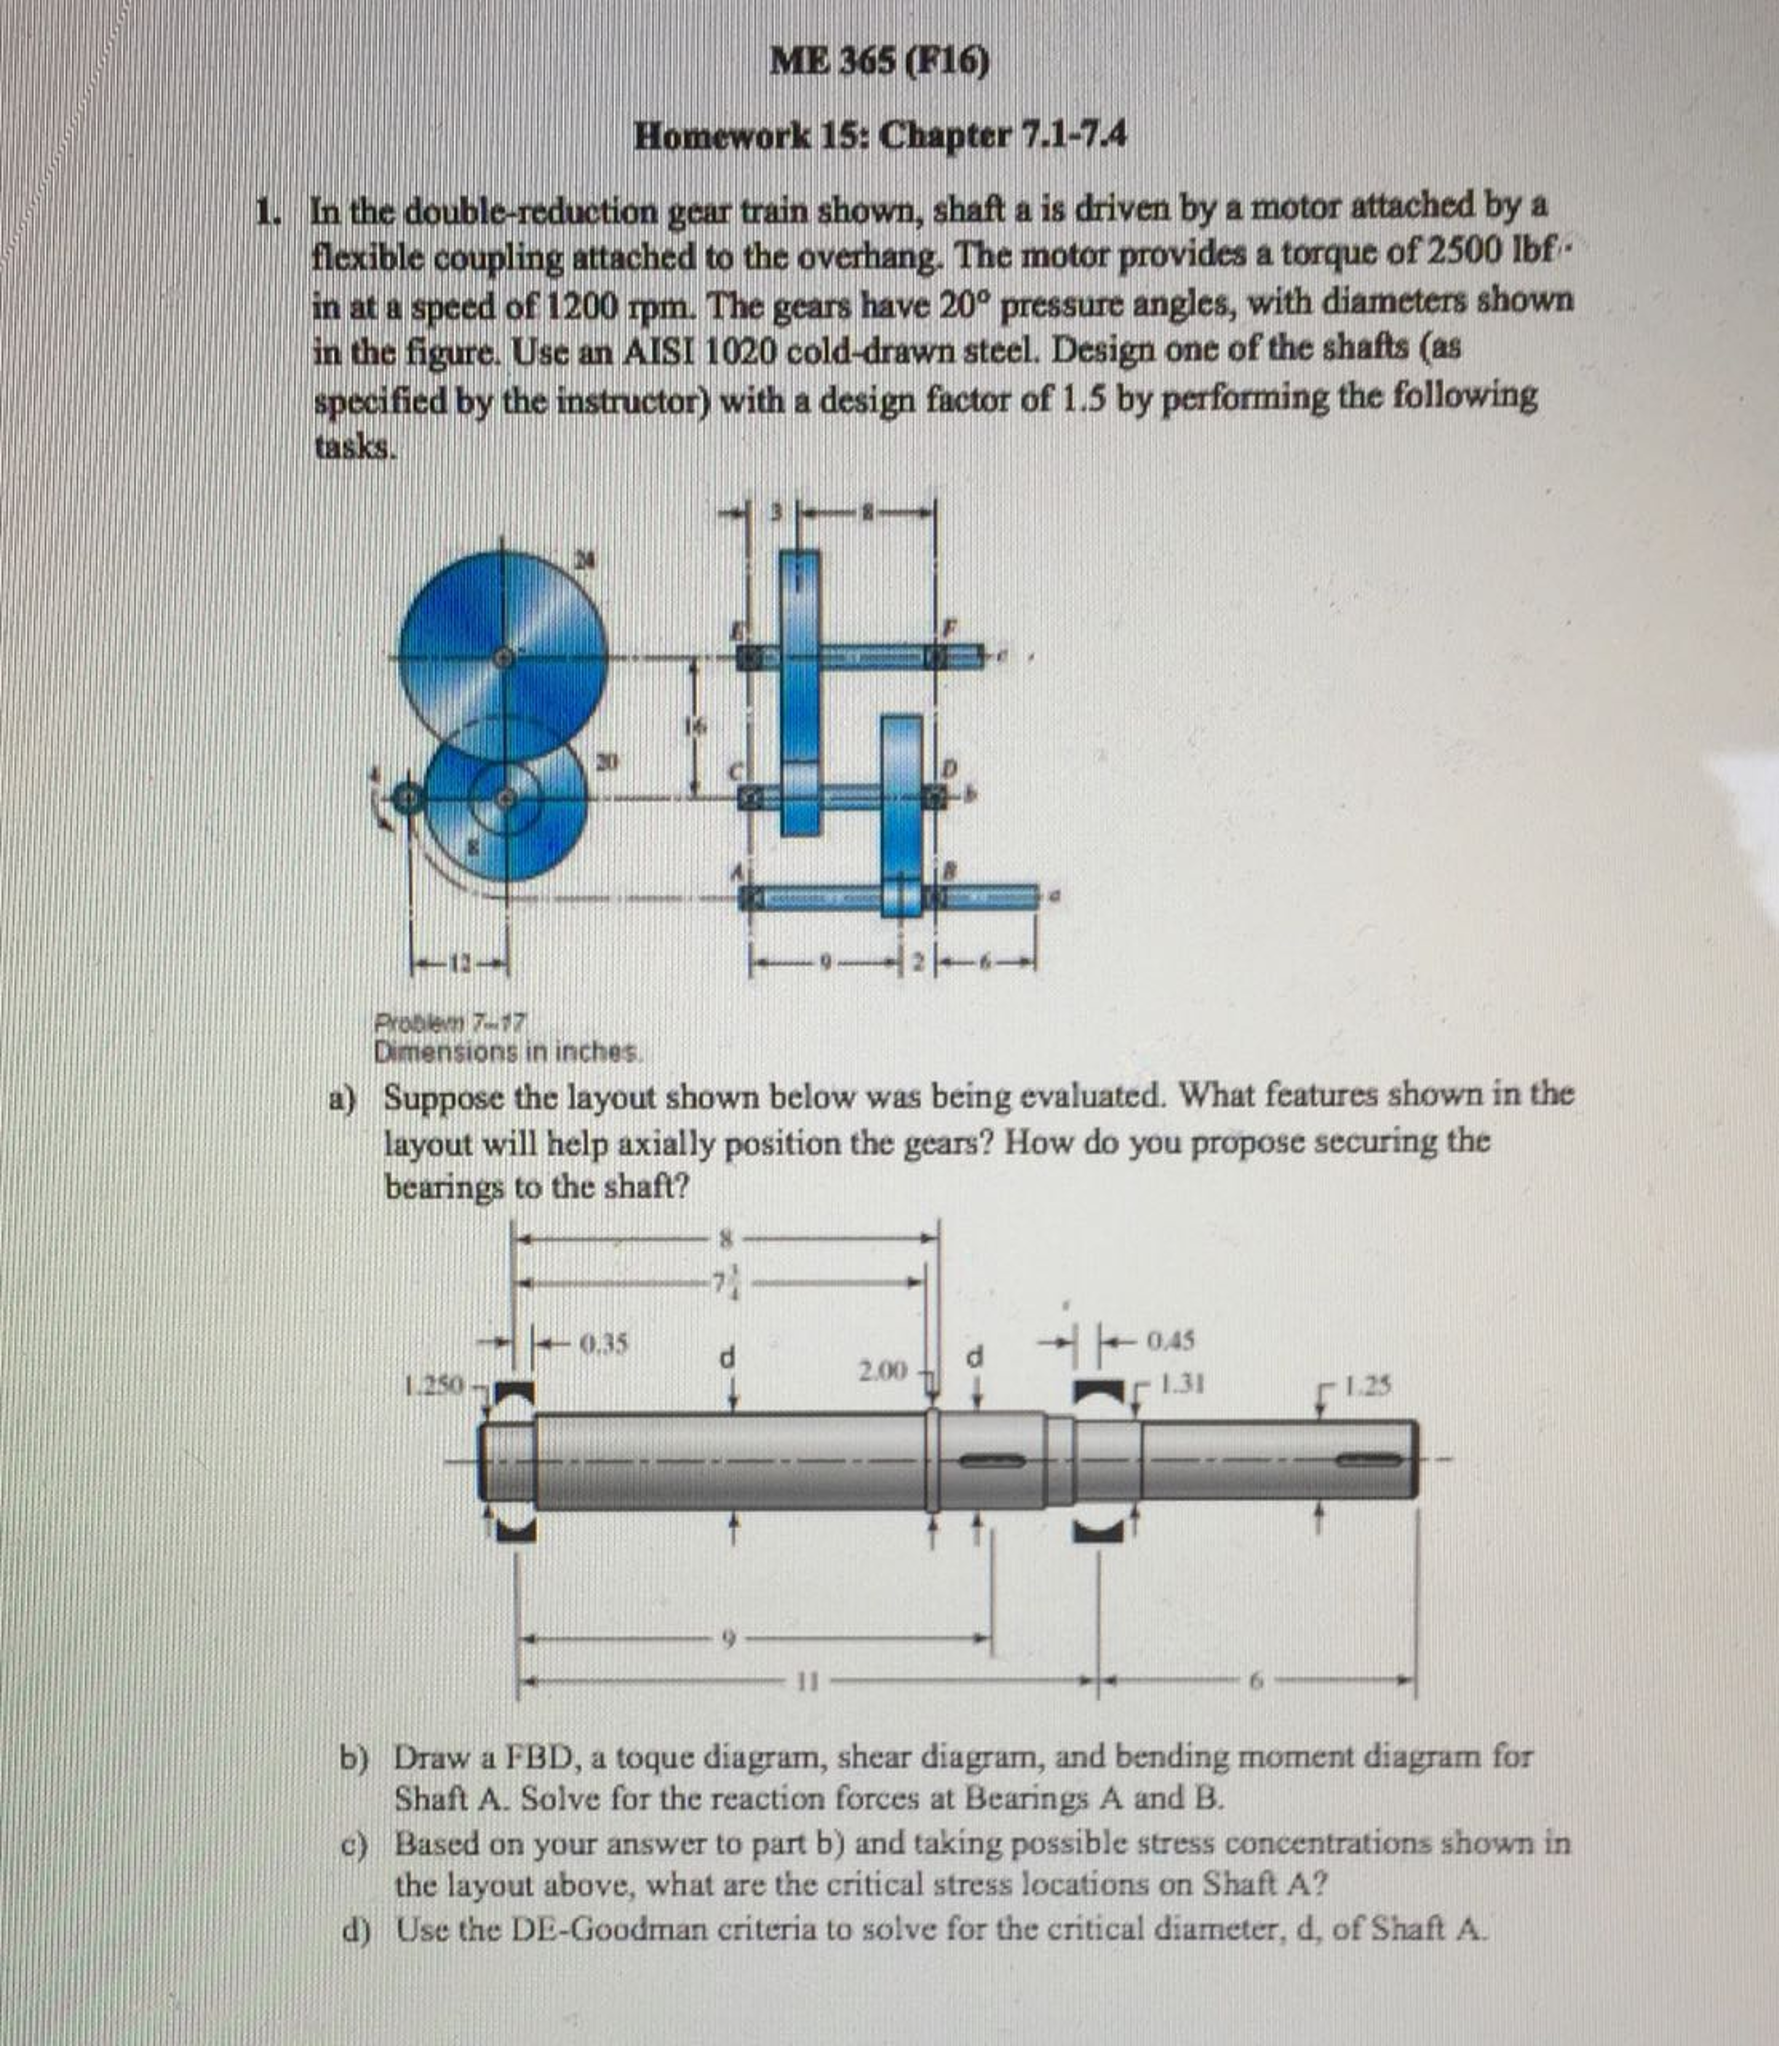 Solved: In The Double-reduction Gear Train Shown, Shaft A ...